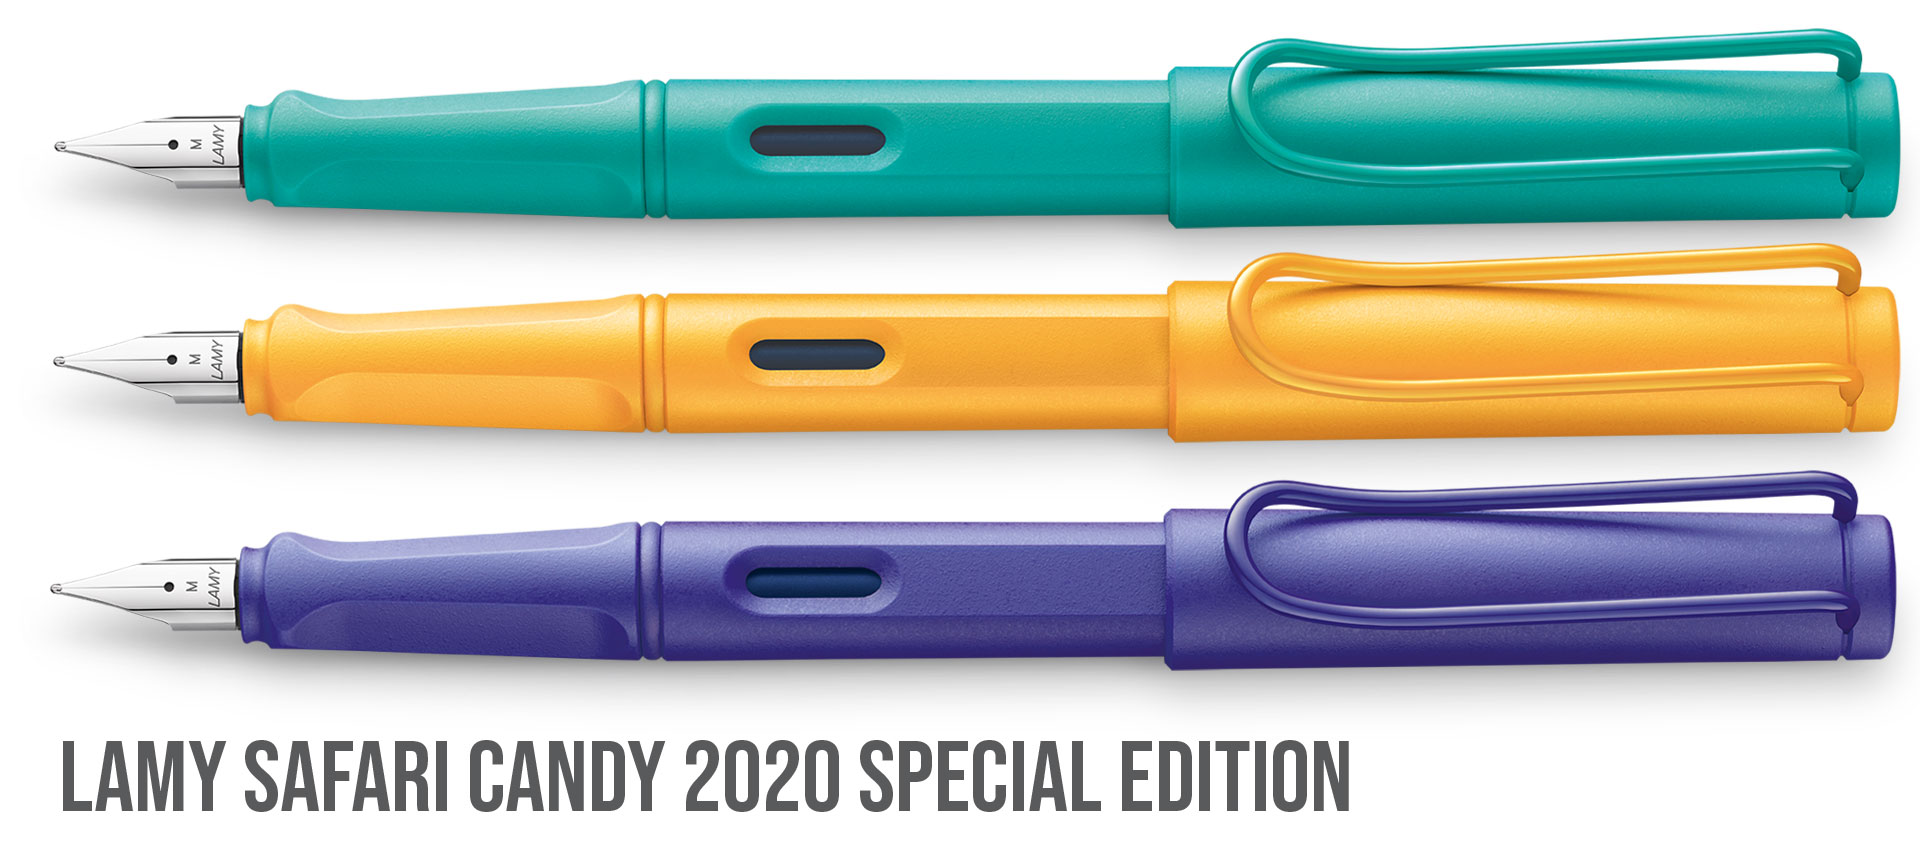 Lamy Safari Candy - Special Edition of 2020